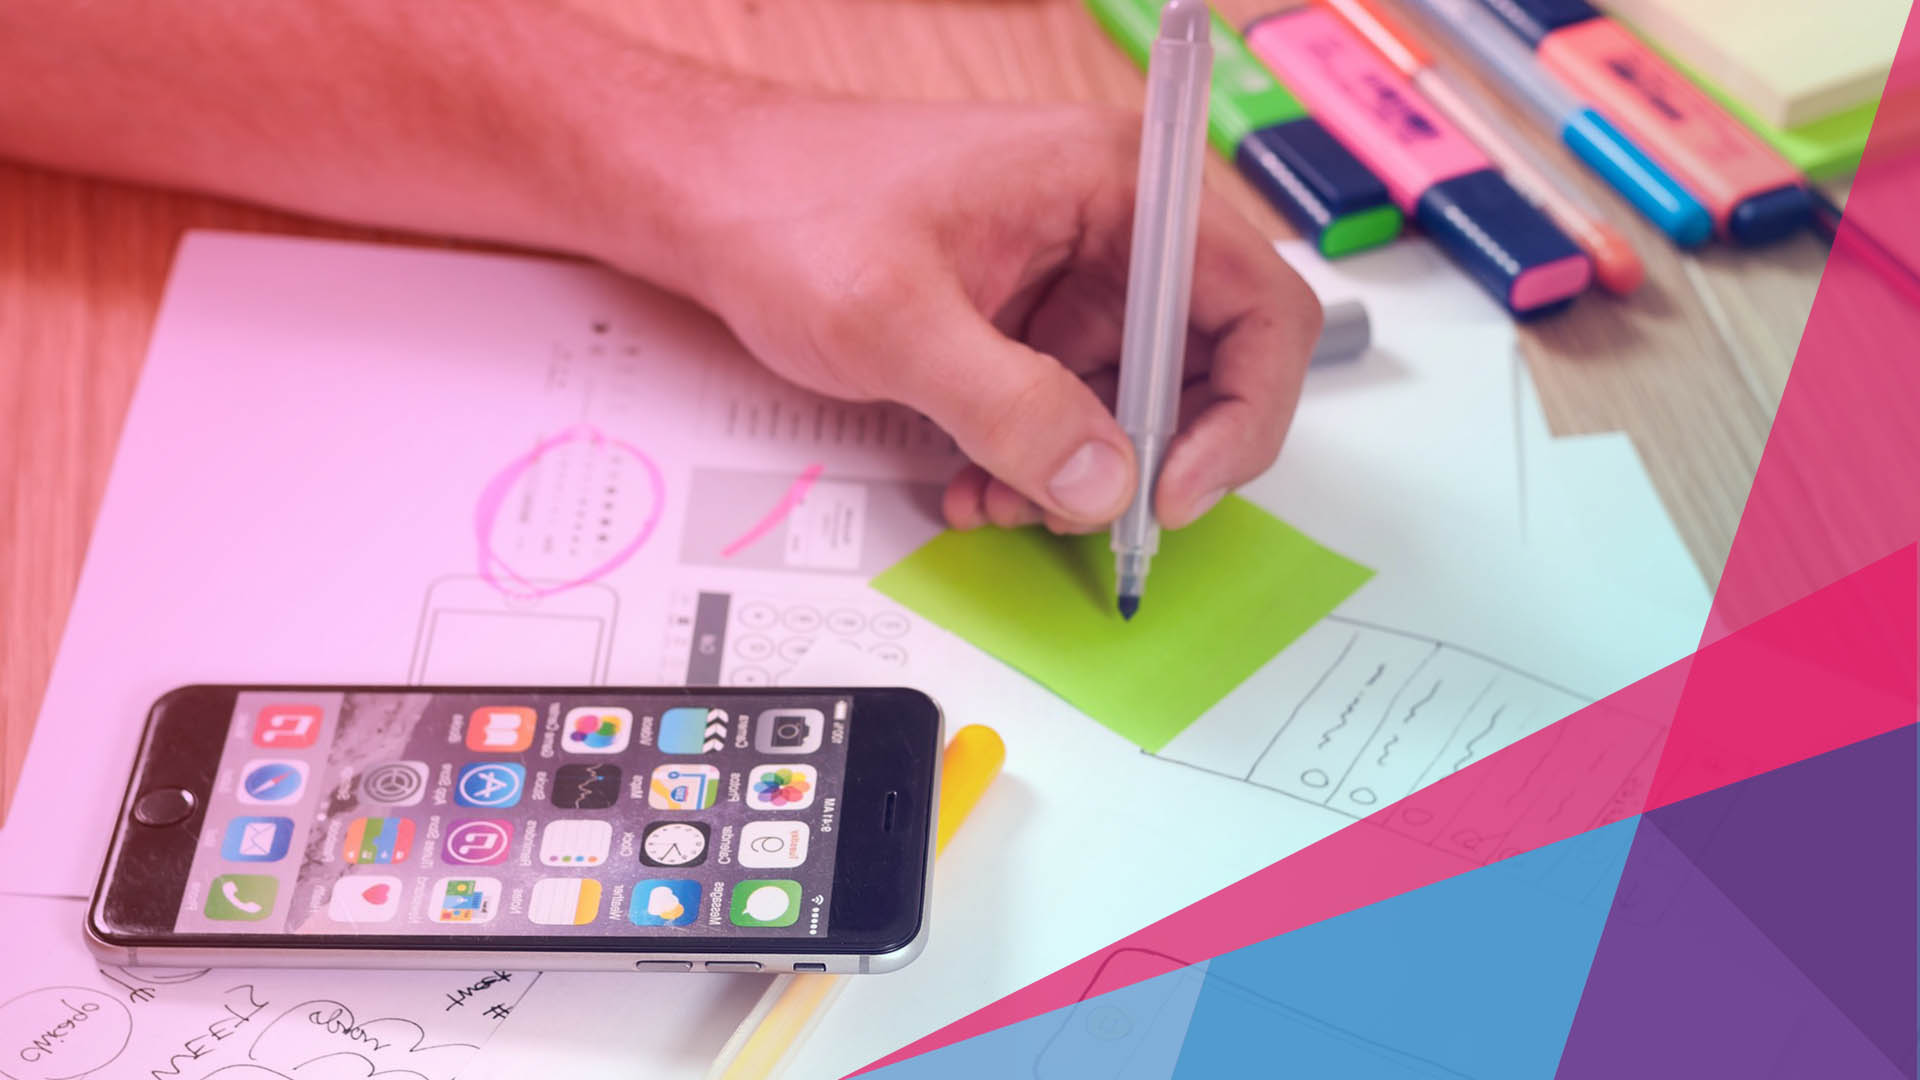 5 futuristic trends in mobile application development you shouldn't avoid